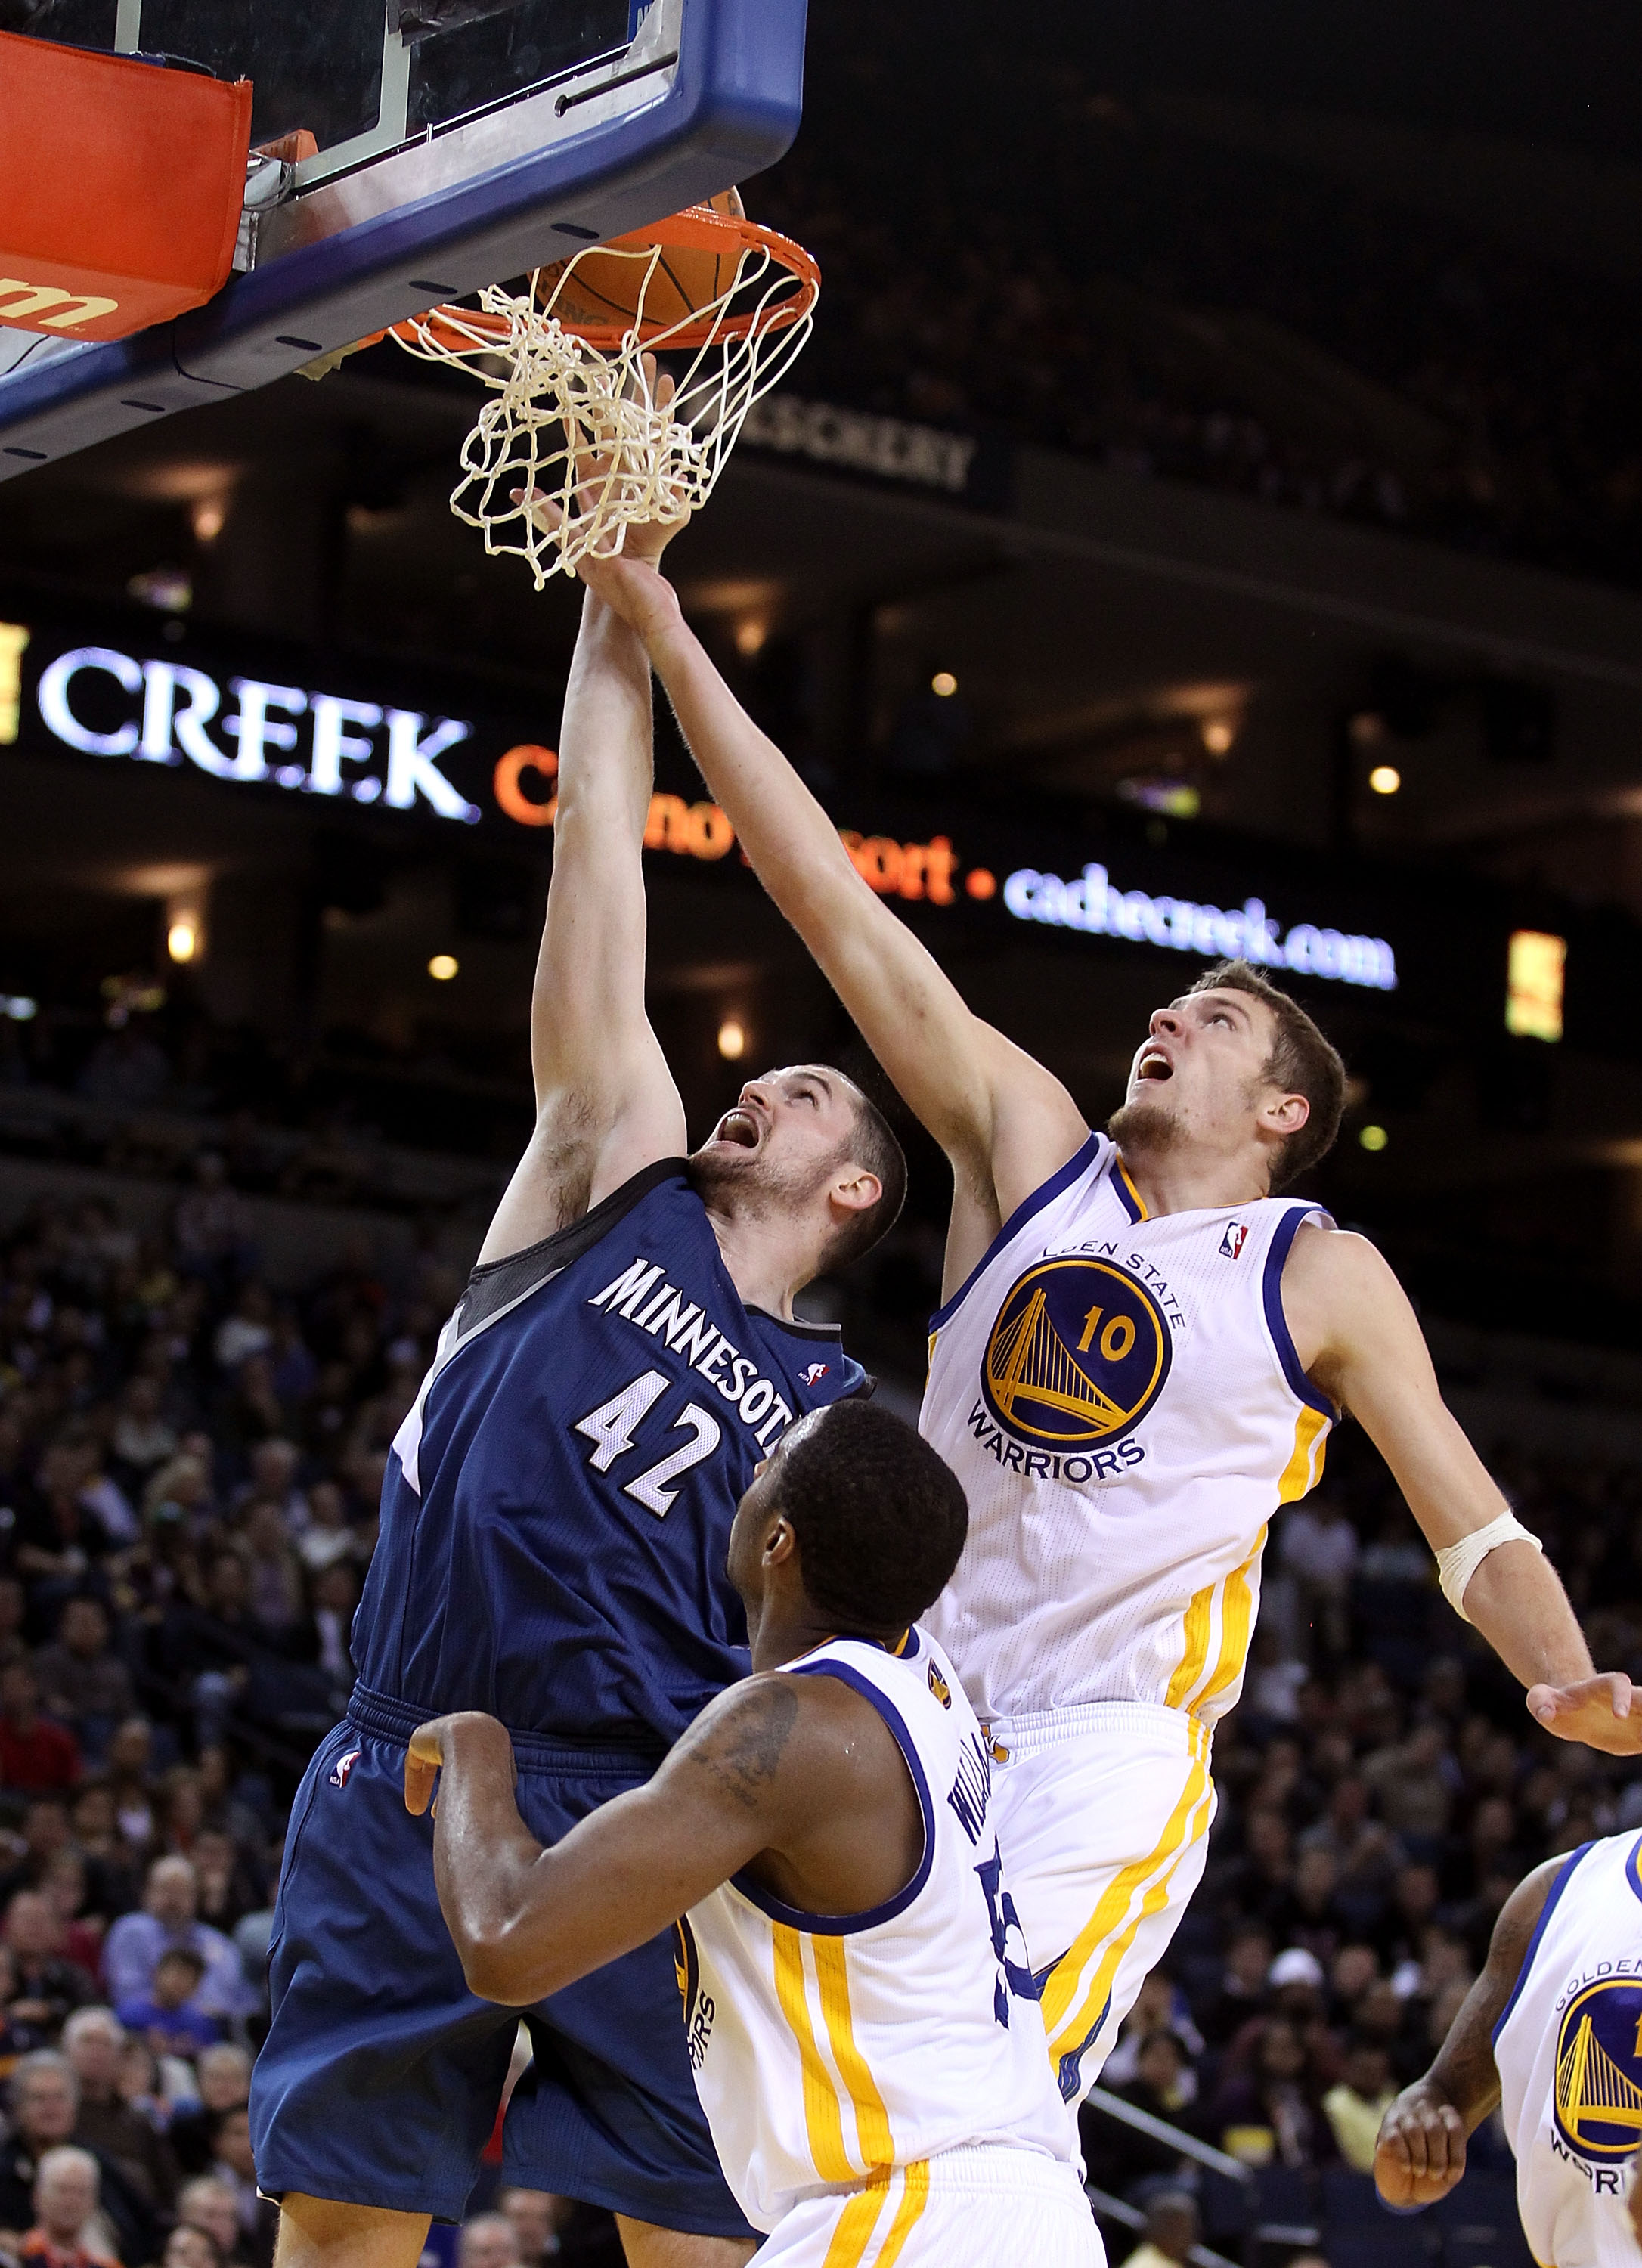 OAKLAND, CA - DECEMBER 14:  Kevin Love #42 of the Minnesota Timberwolves shoots over David Lee #10 of the Golden State Warriors at Oracle Arena on December 14, 2010 in Oakland, California.  NOTE TO USER: User expressly acknowledges and agrees that, by dow